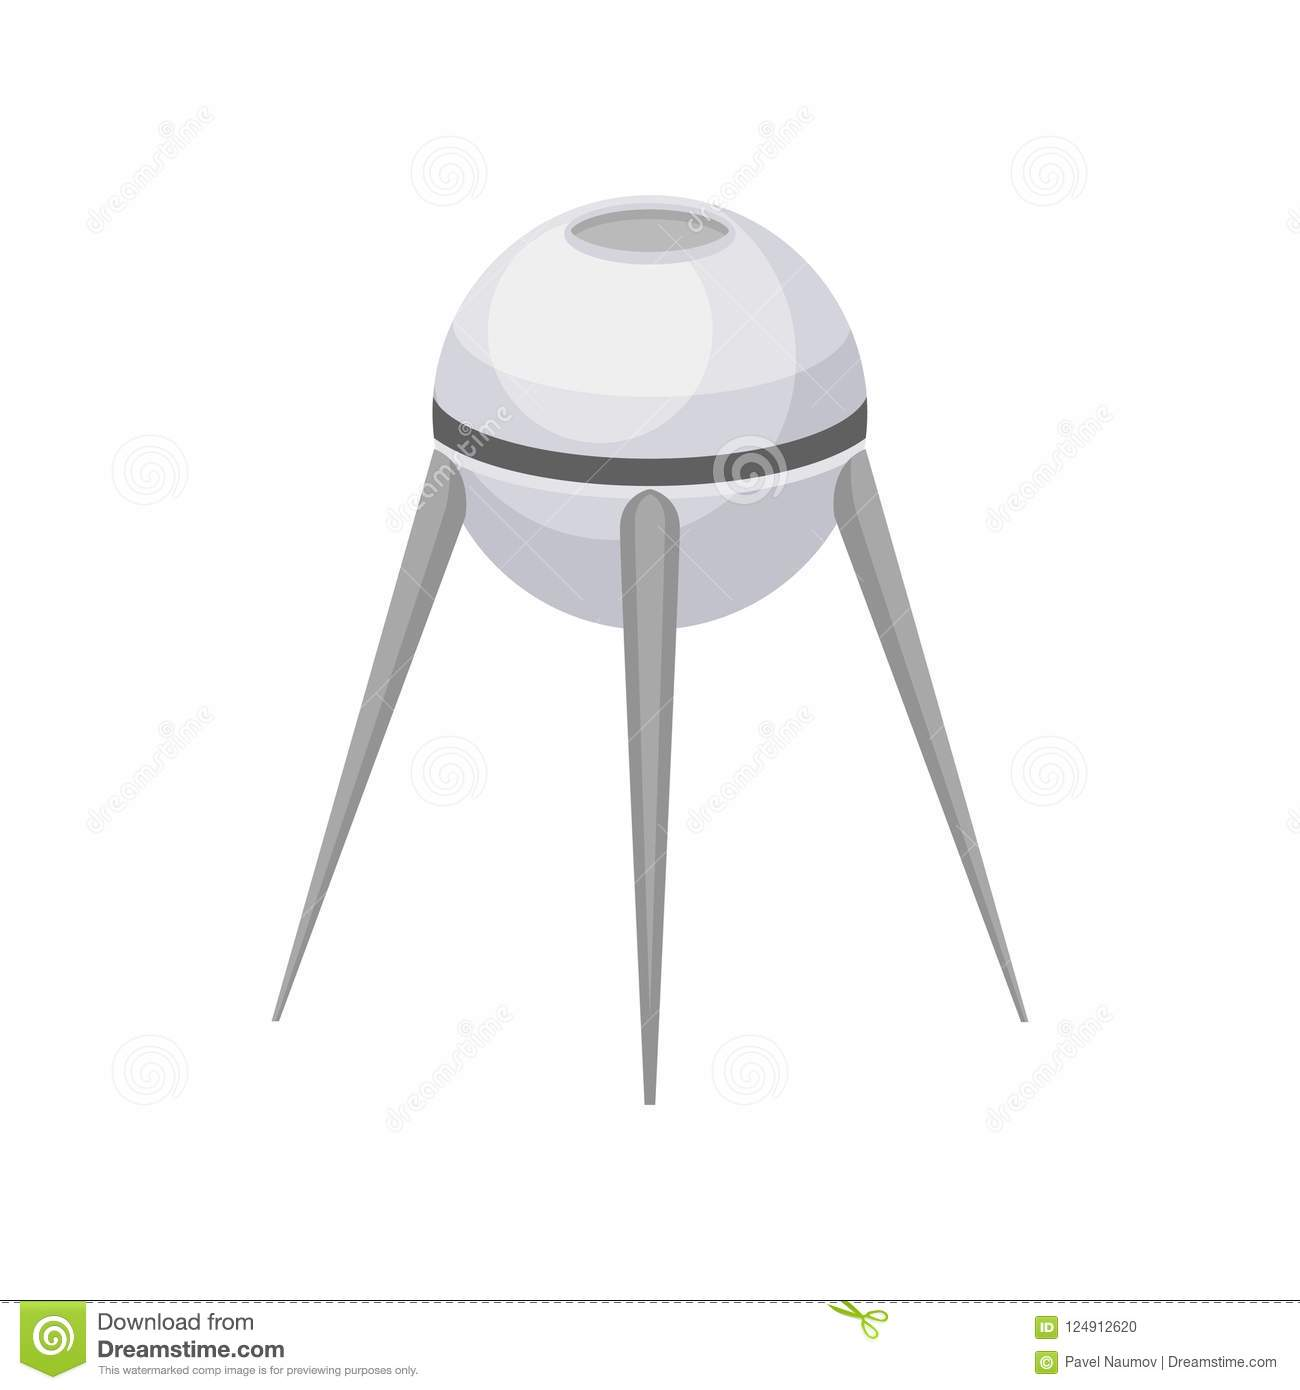 Gray round-shaped artificial satellite. Modern space technology. Flat vector element for mobile or computer game